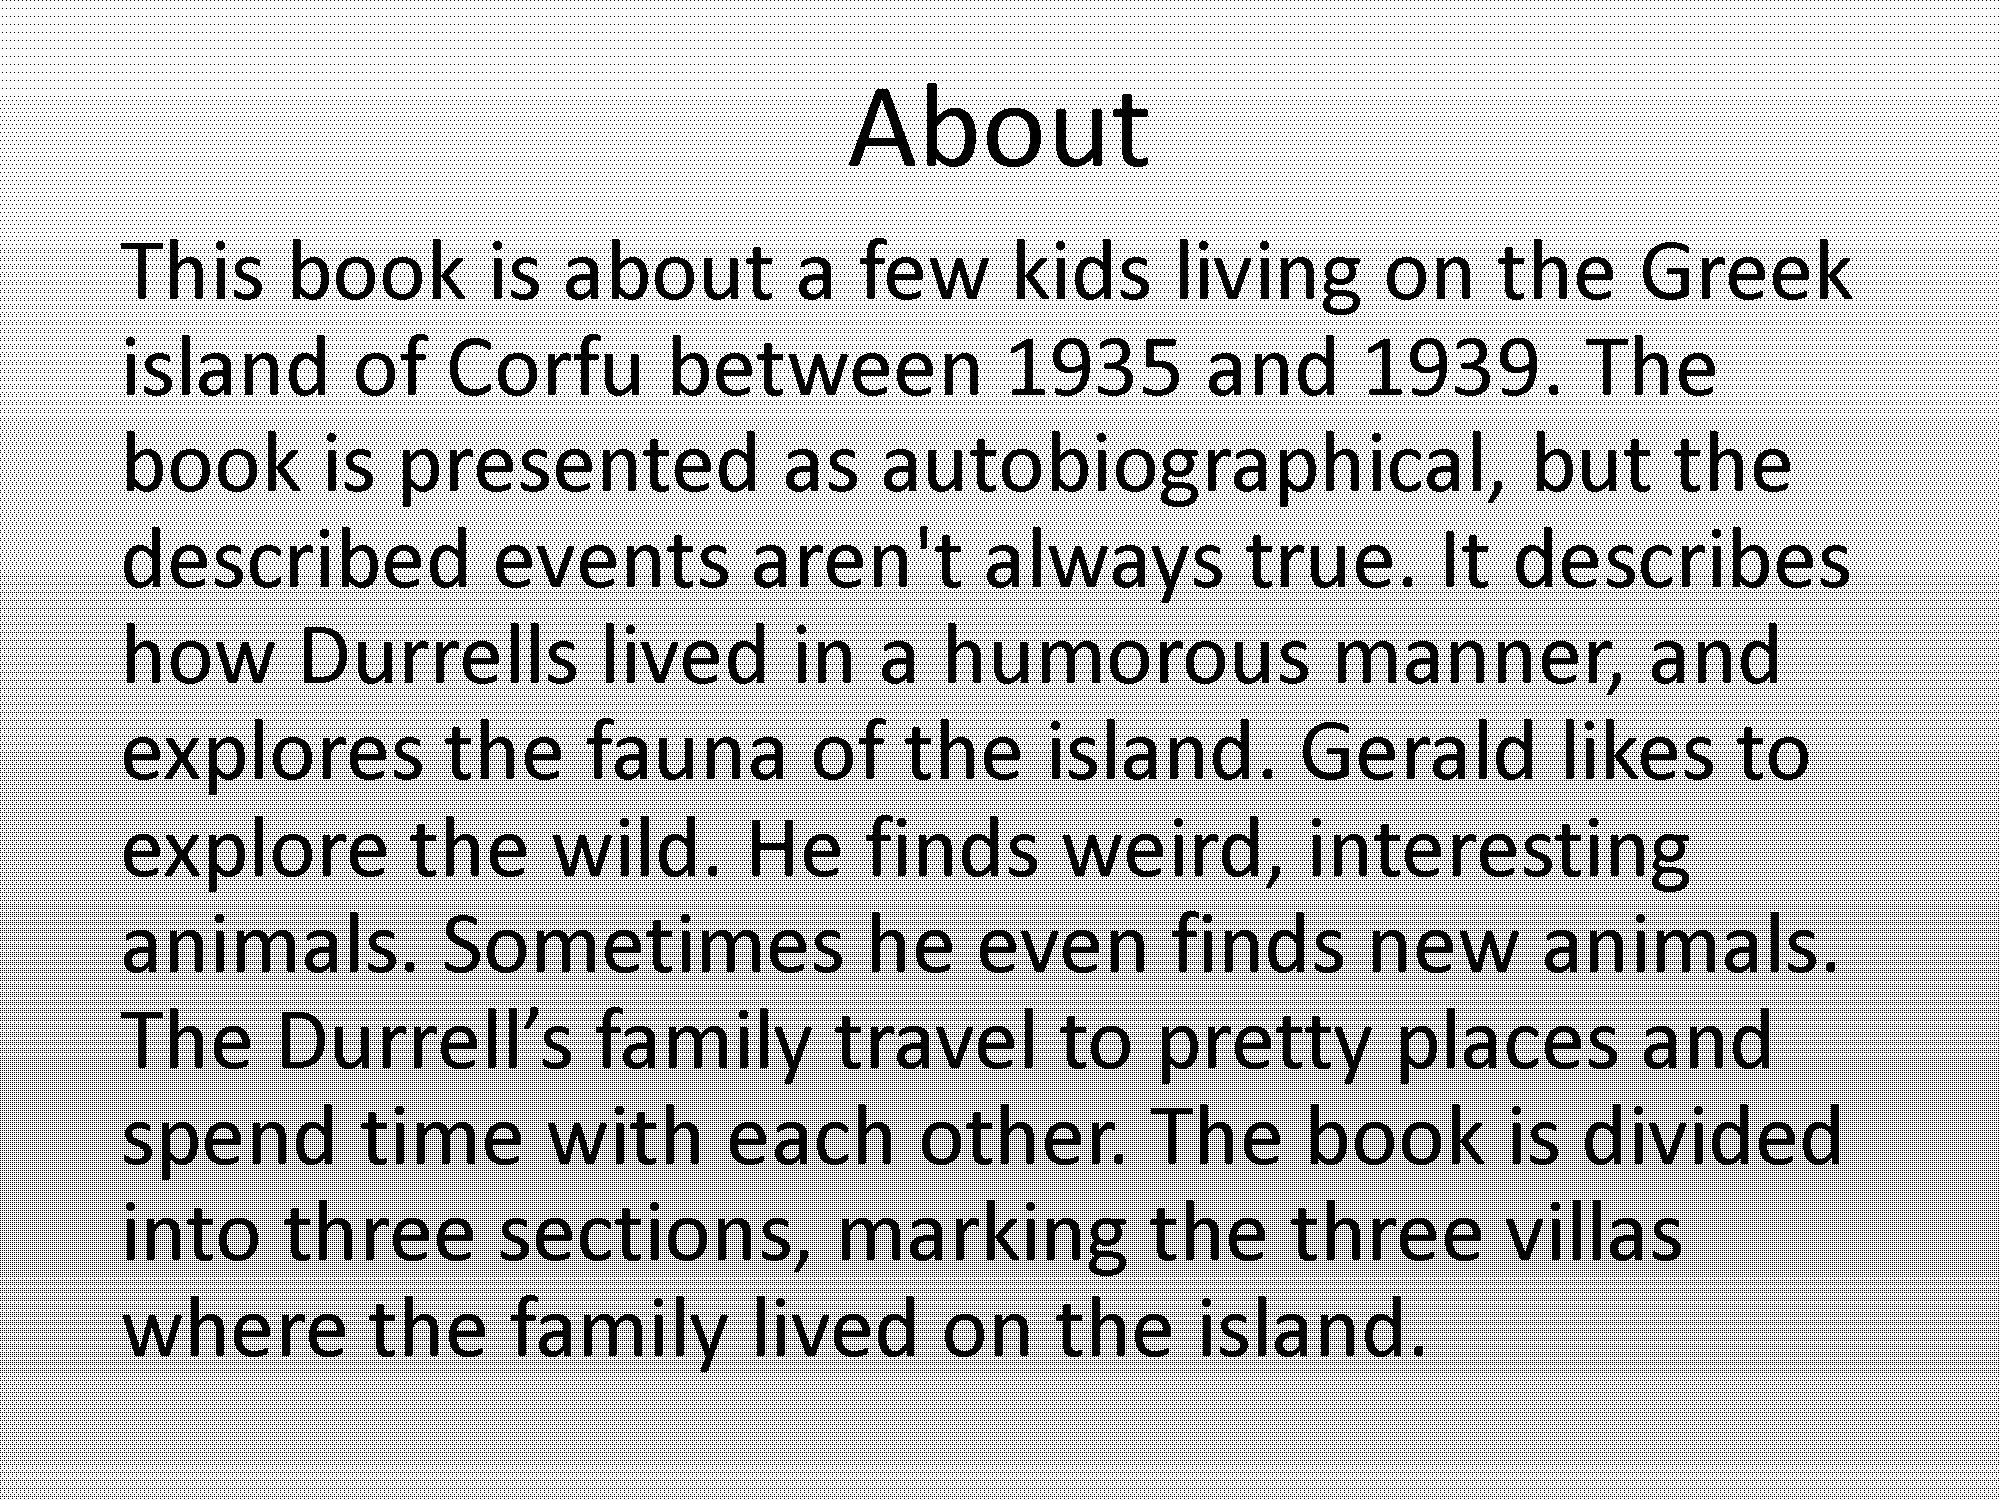 Gerald-Durrell-My-Family-and-other-Animals-v2_Page_4